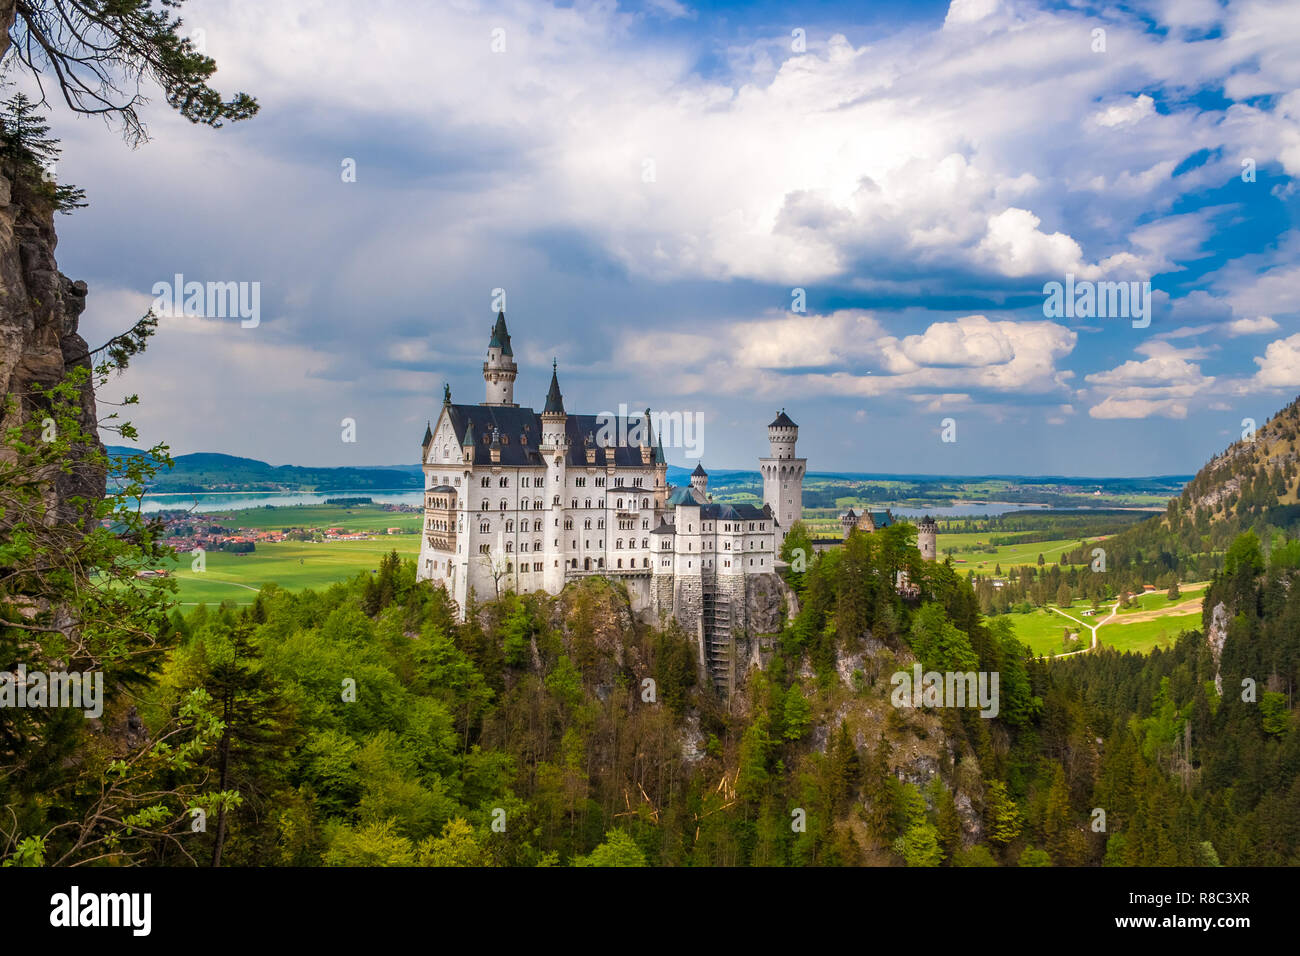 Panoramic view of the south façade of Neuschwanstein Castle surrounded by mountains. The popular tourist sight is a Romanesque Revival palace, built... - Stock Image